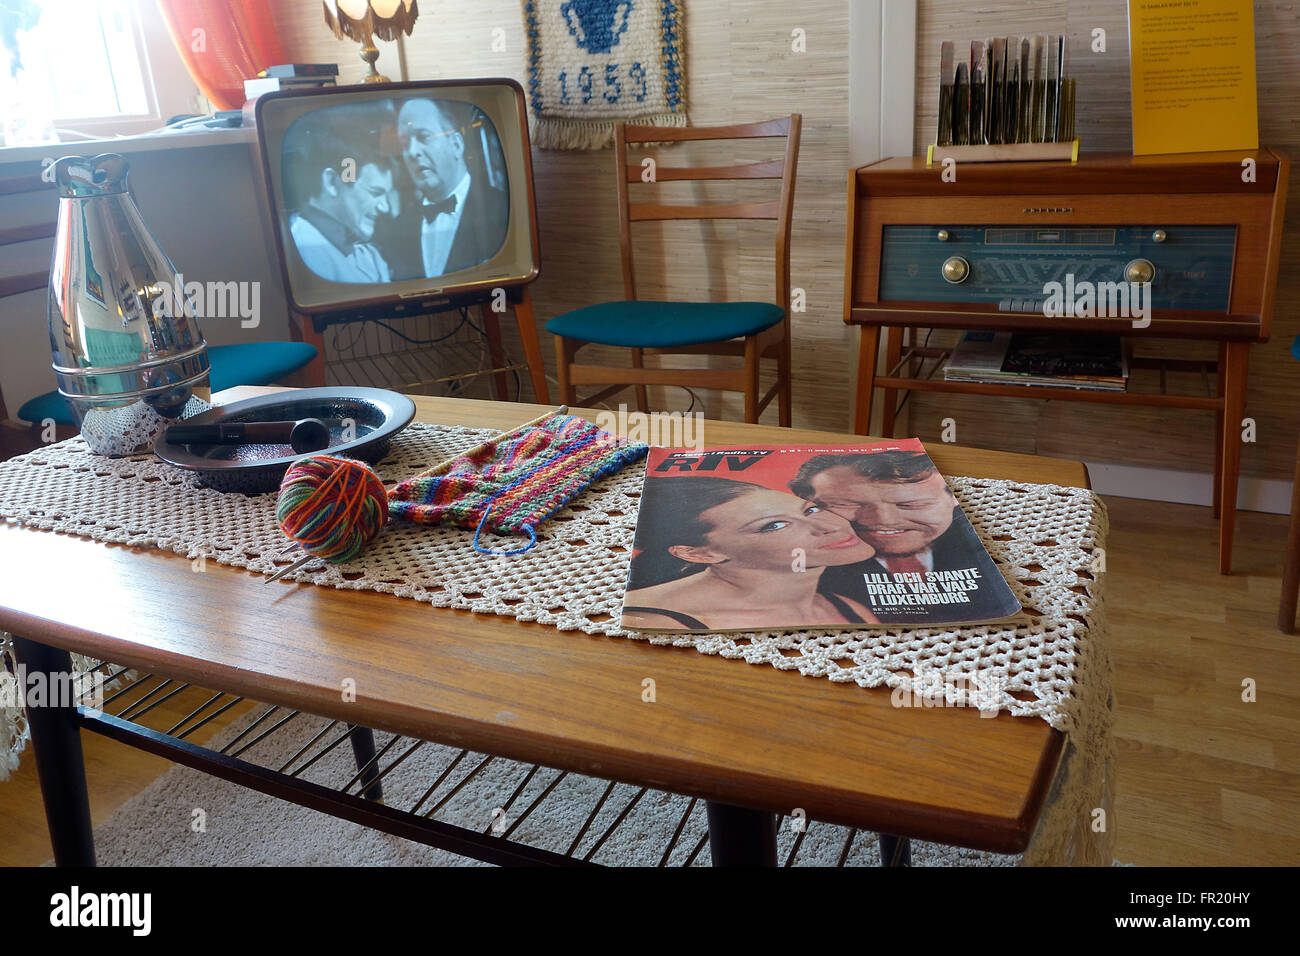 Mid 60es Swedish middle class sitting room with B&W TV and radio receiver set.  Interior design. - Stock Image